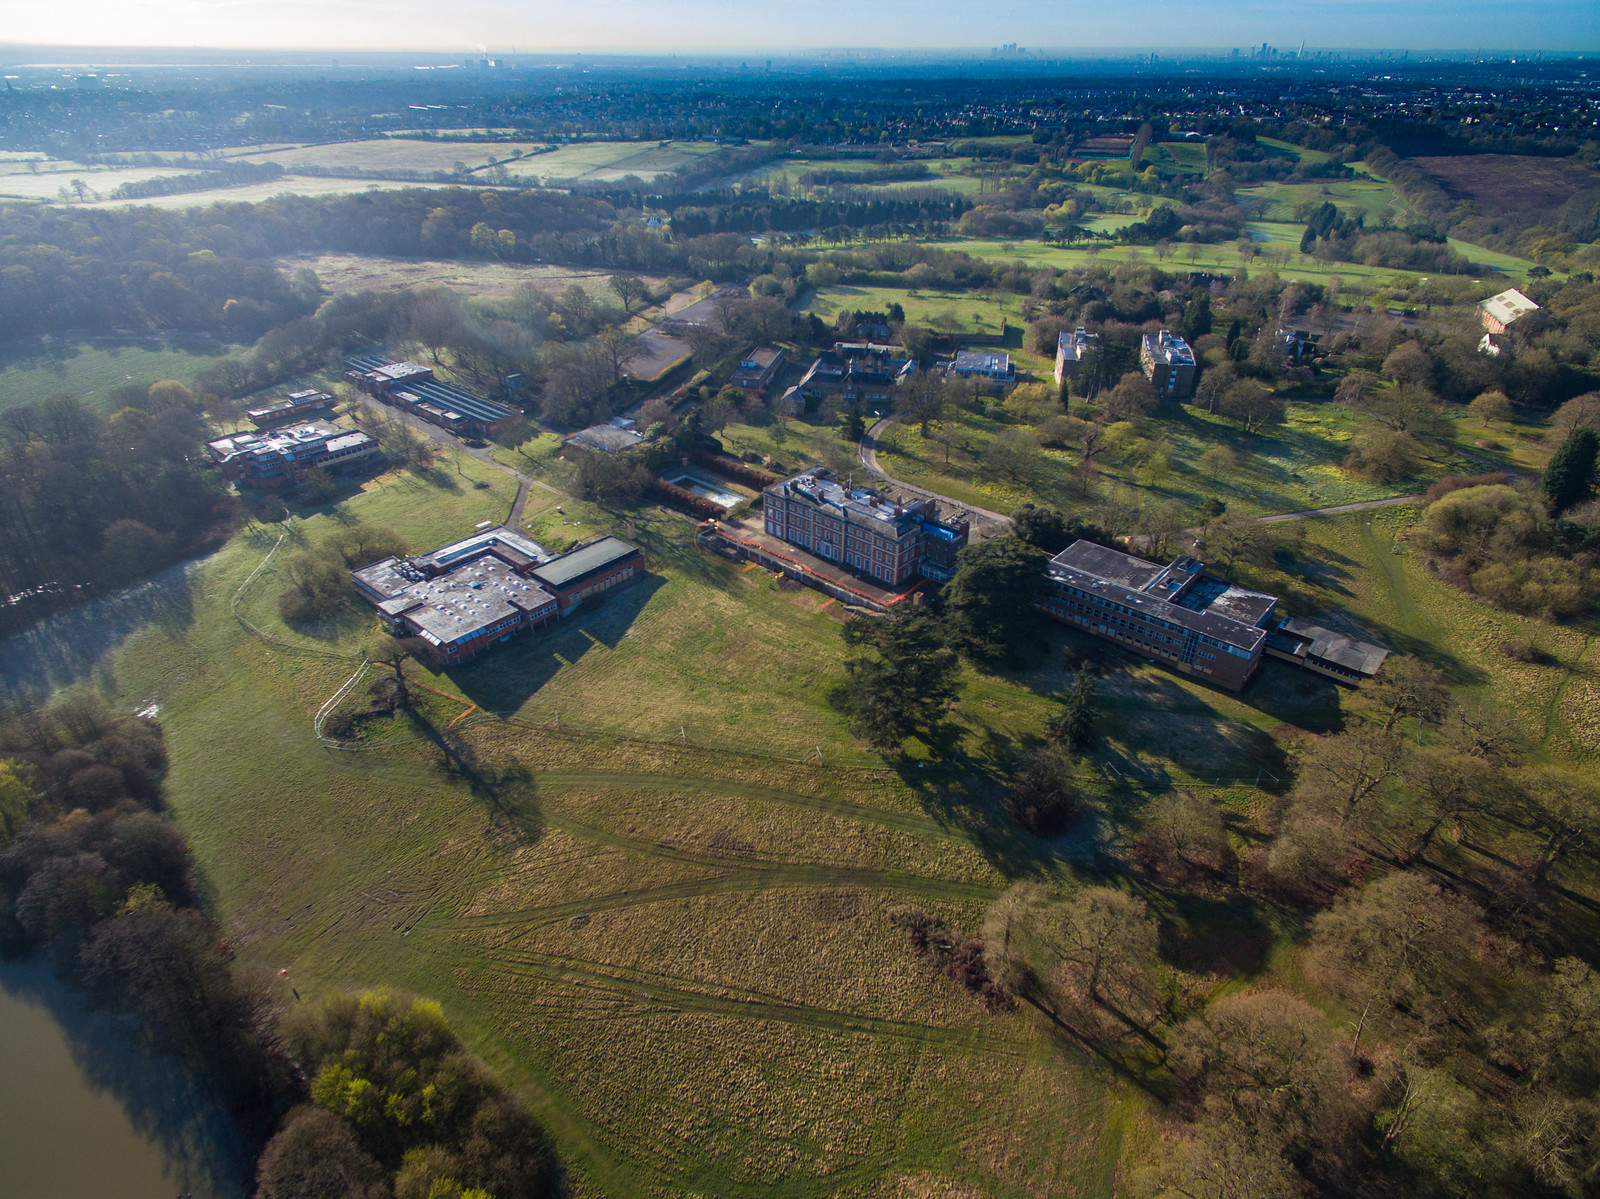 Trent Park Campus from the Air